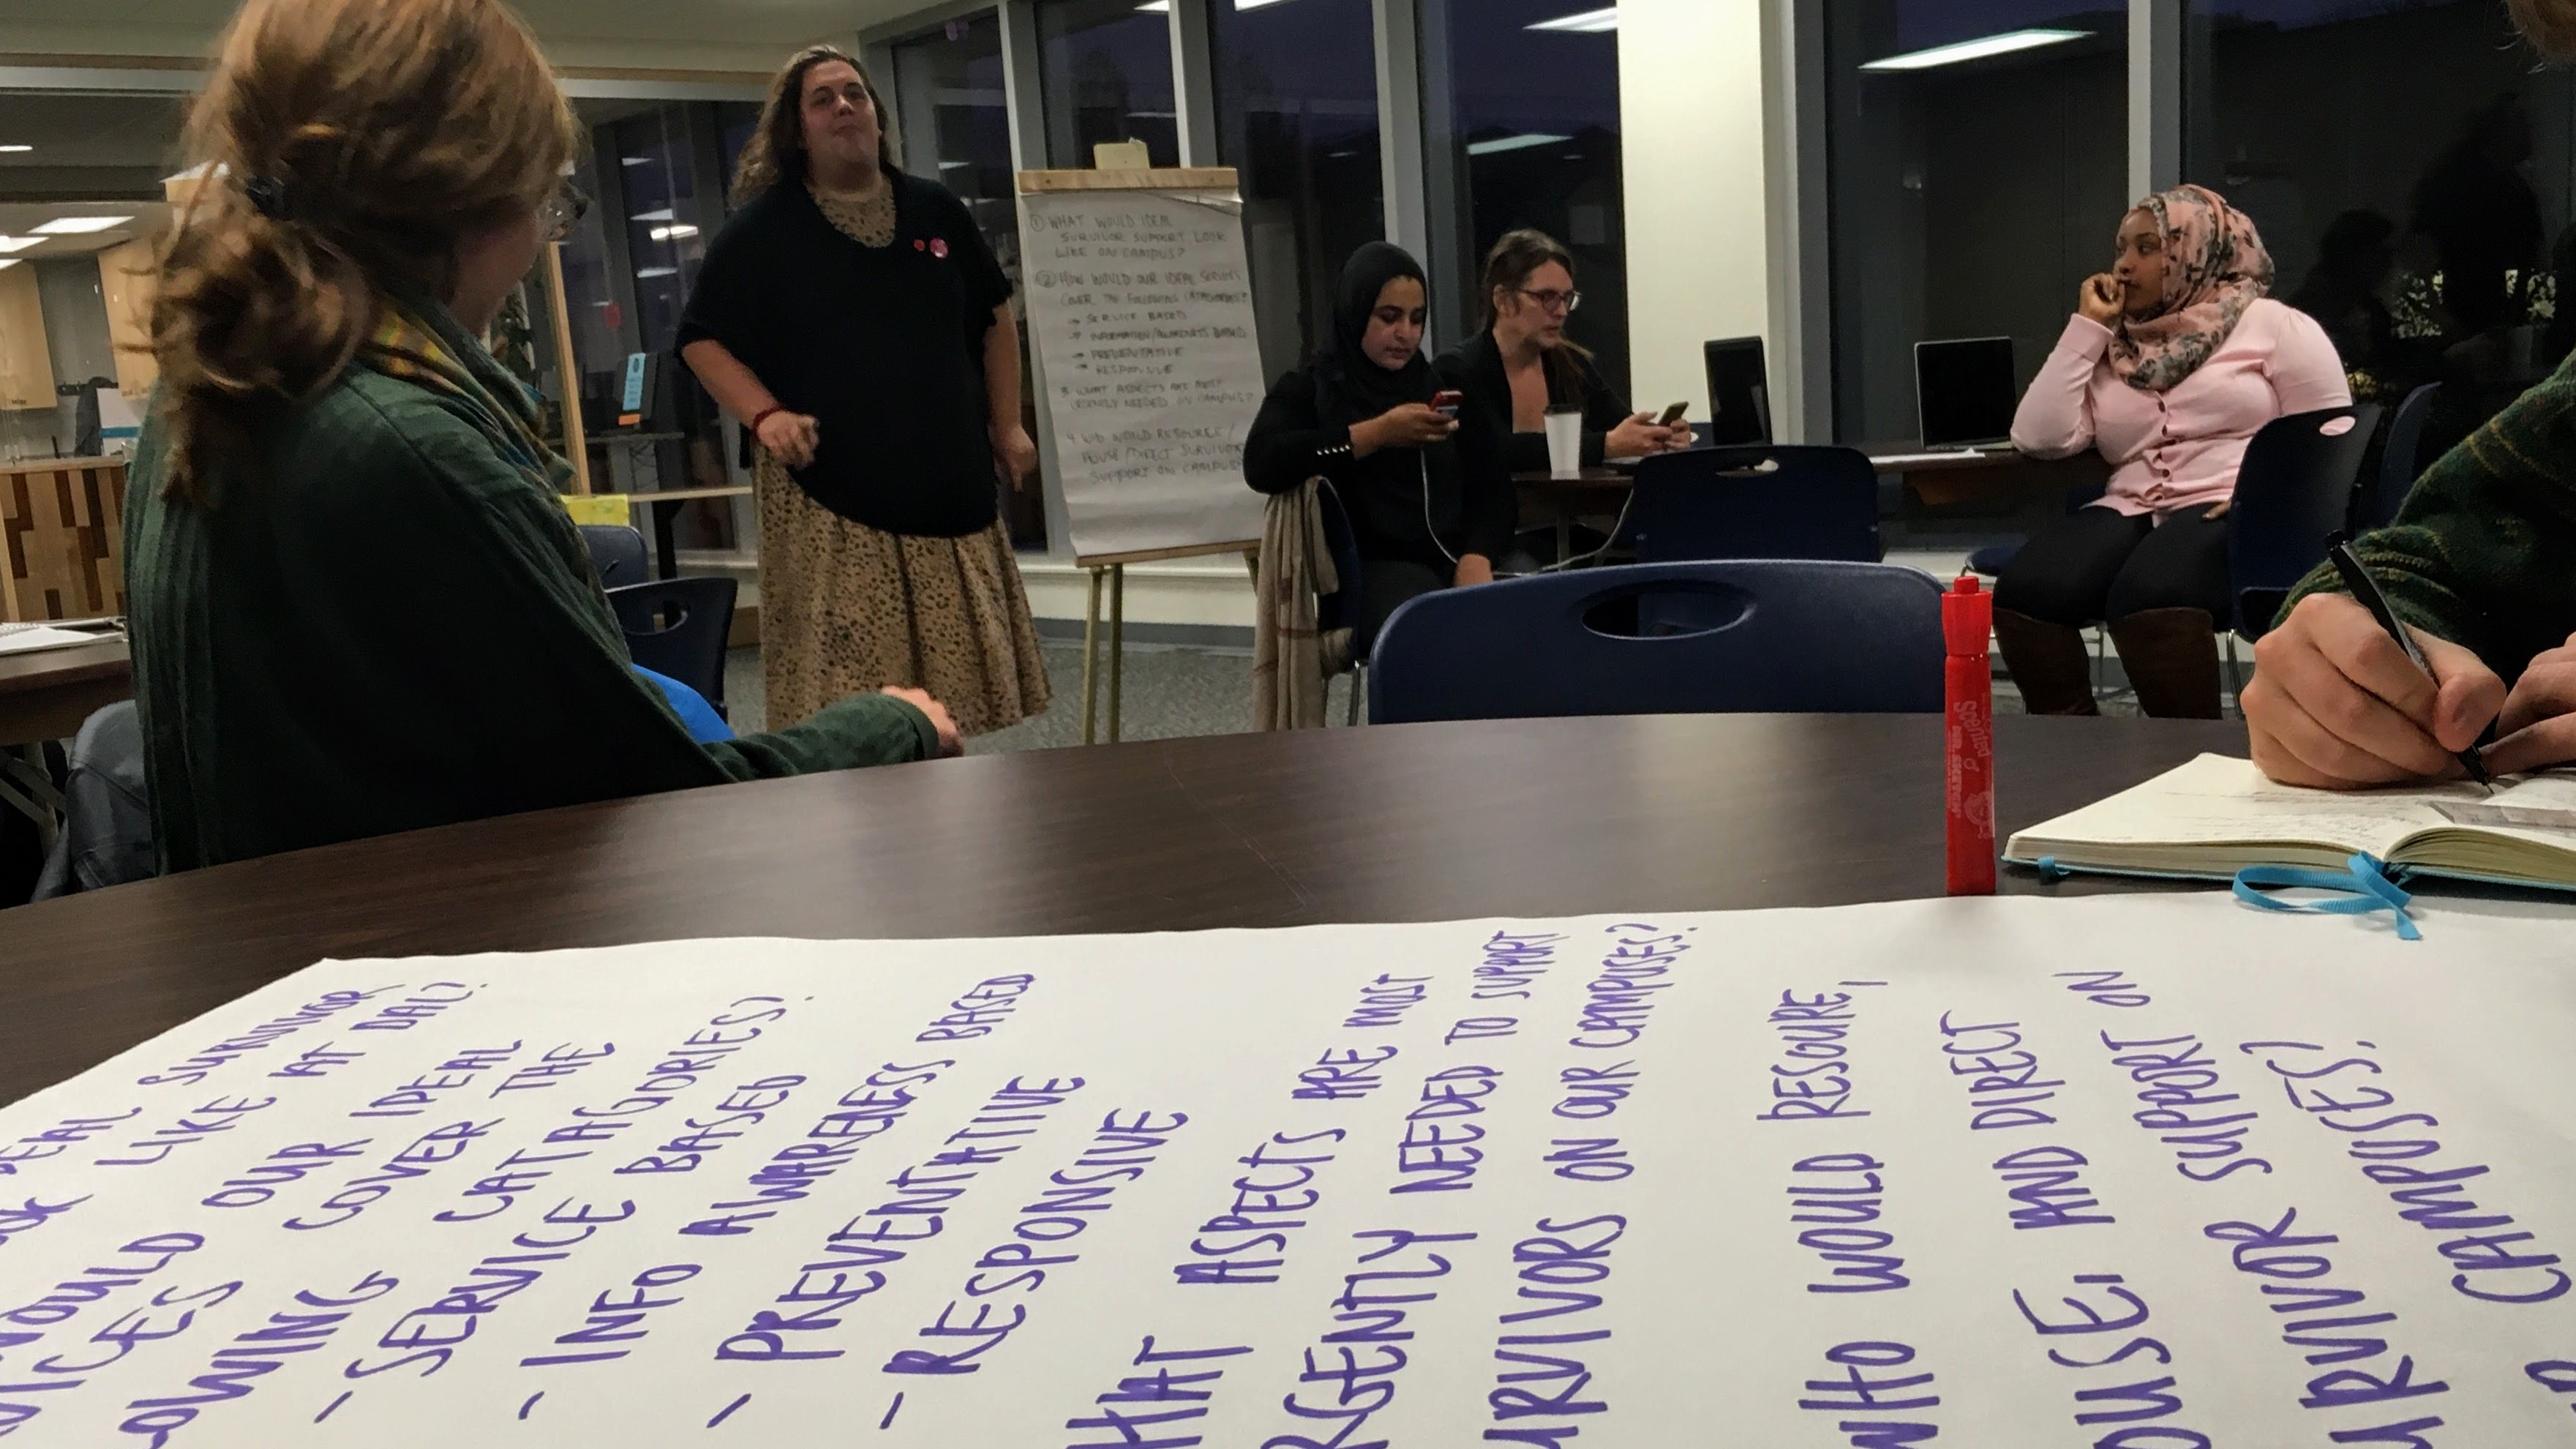 Rhiannon Makohoniuk, standing, presents some ideas that her table discussed during the strategy session.